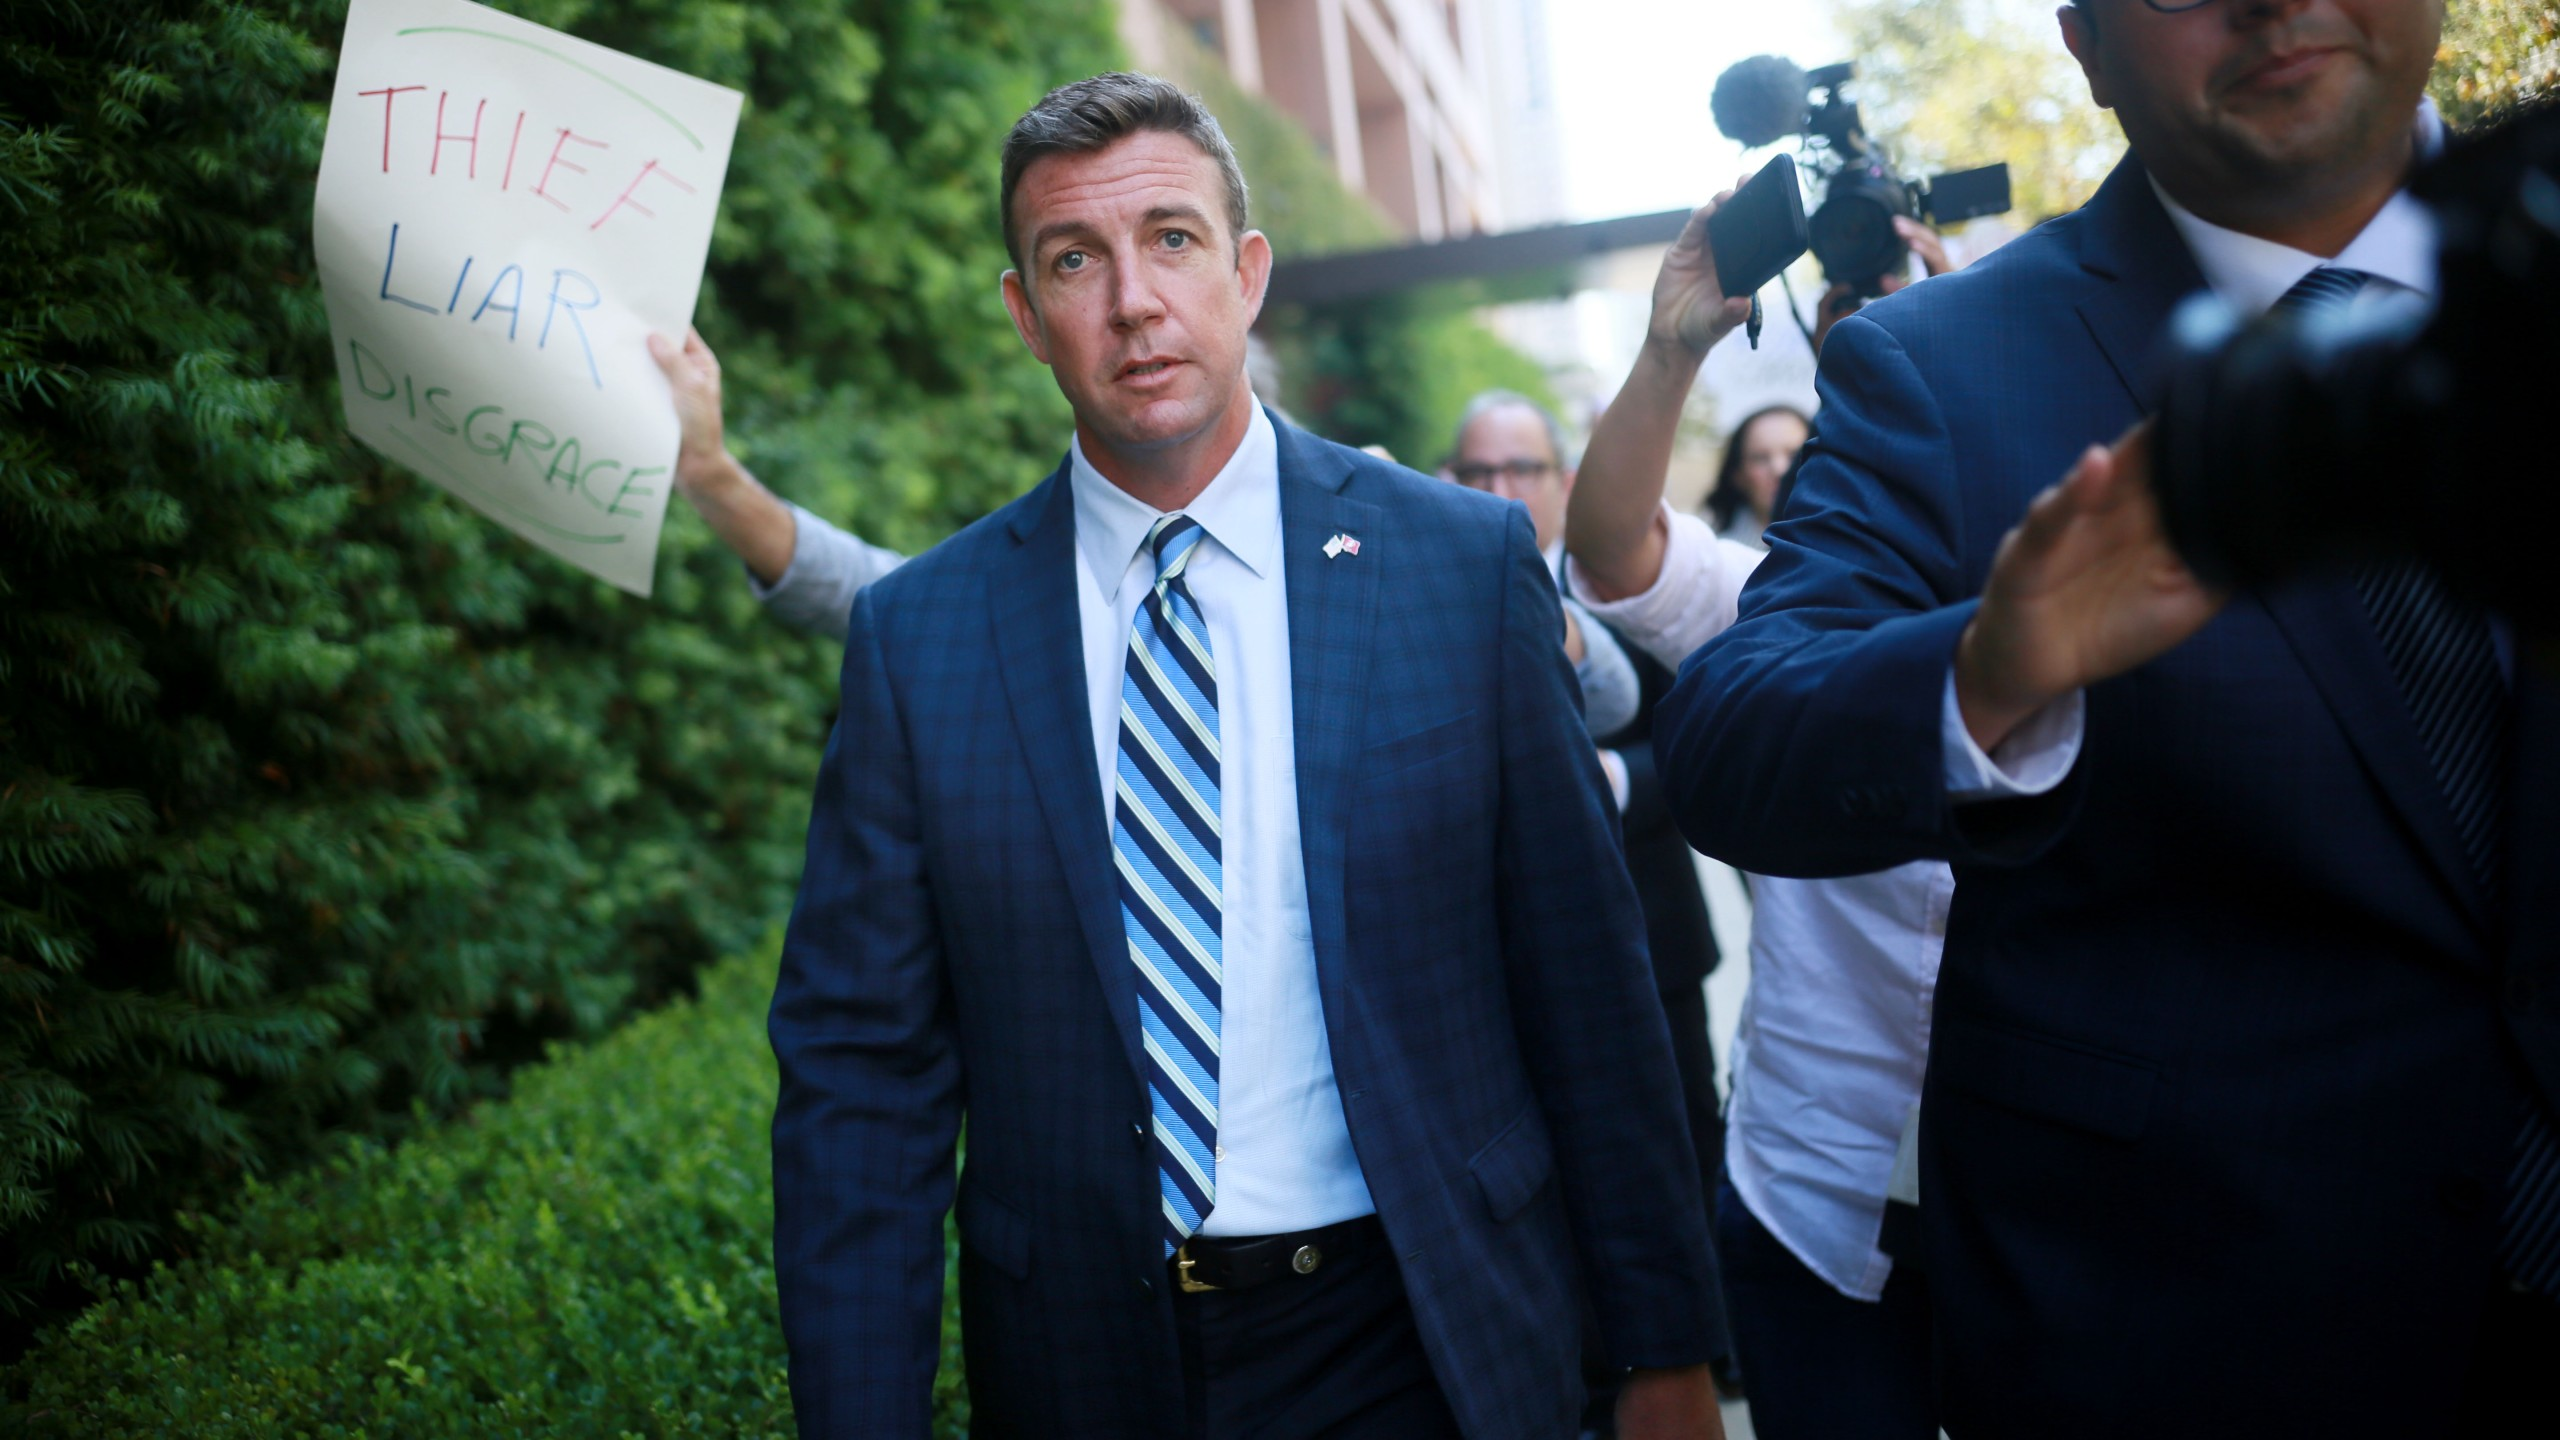 Congressman Duncan Hunter walks out of the San Diego Federal Courthouse after an arraignment hearing on Aug. 23, 2018. (Credit: Sandy Huffaker / Getty Images)